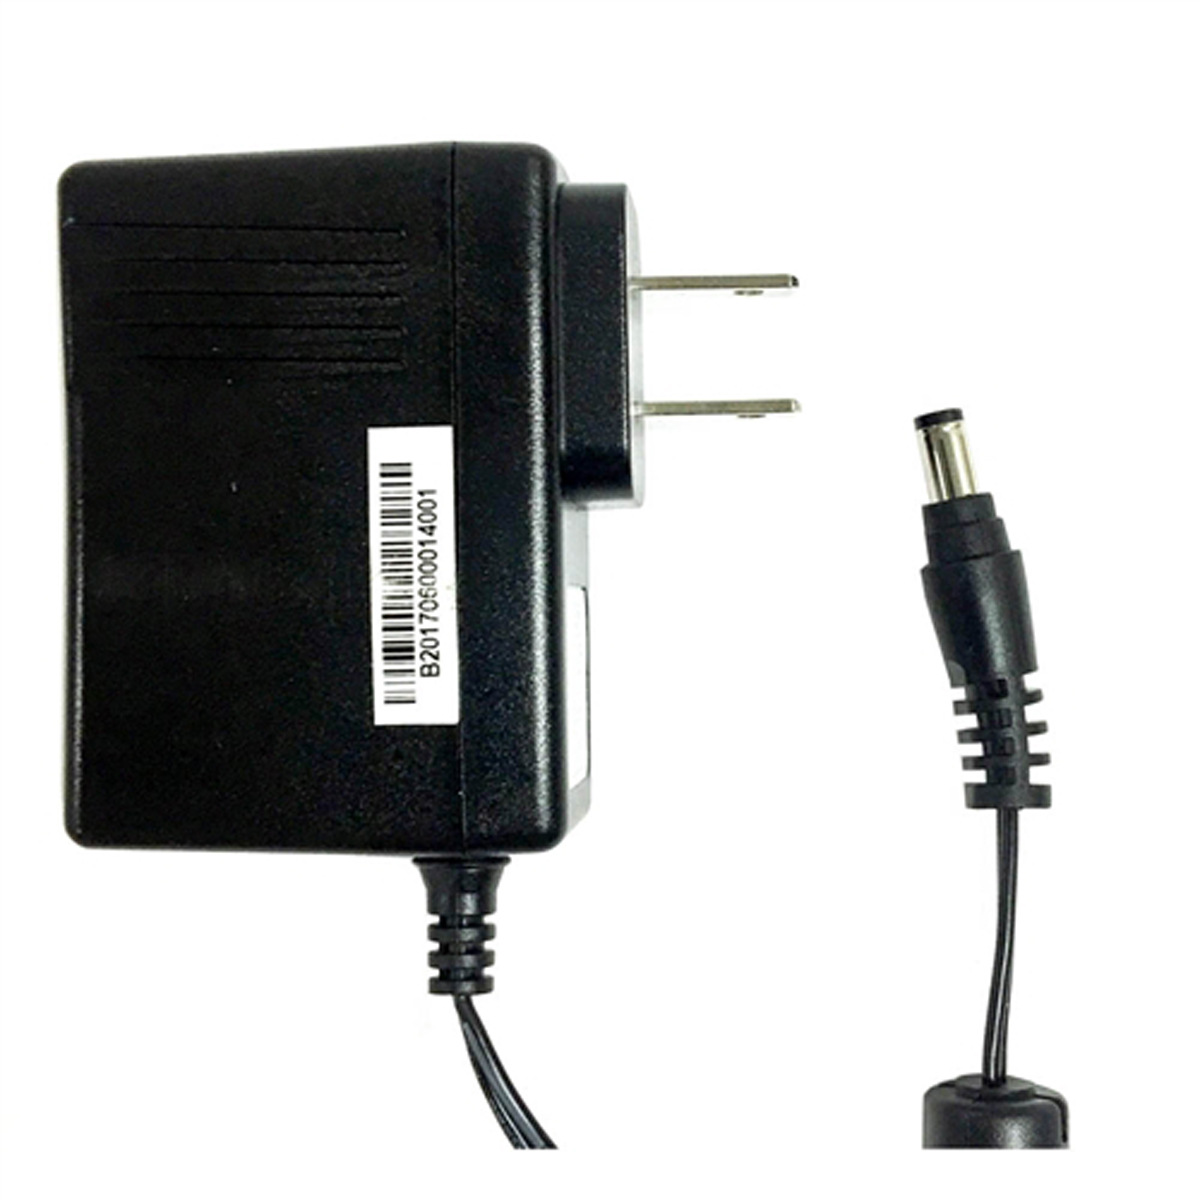 Power Supply 24V-24W for A80, H80 EU plug